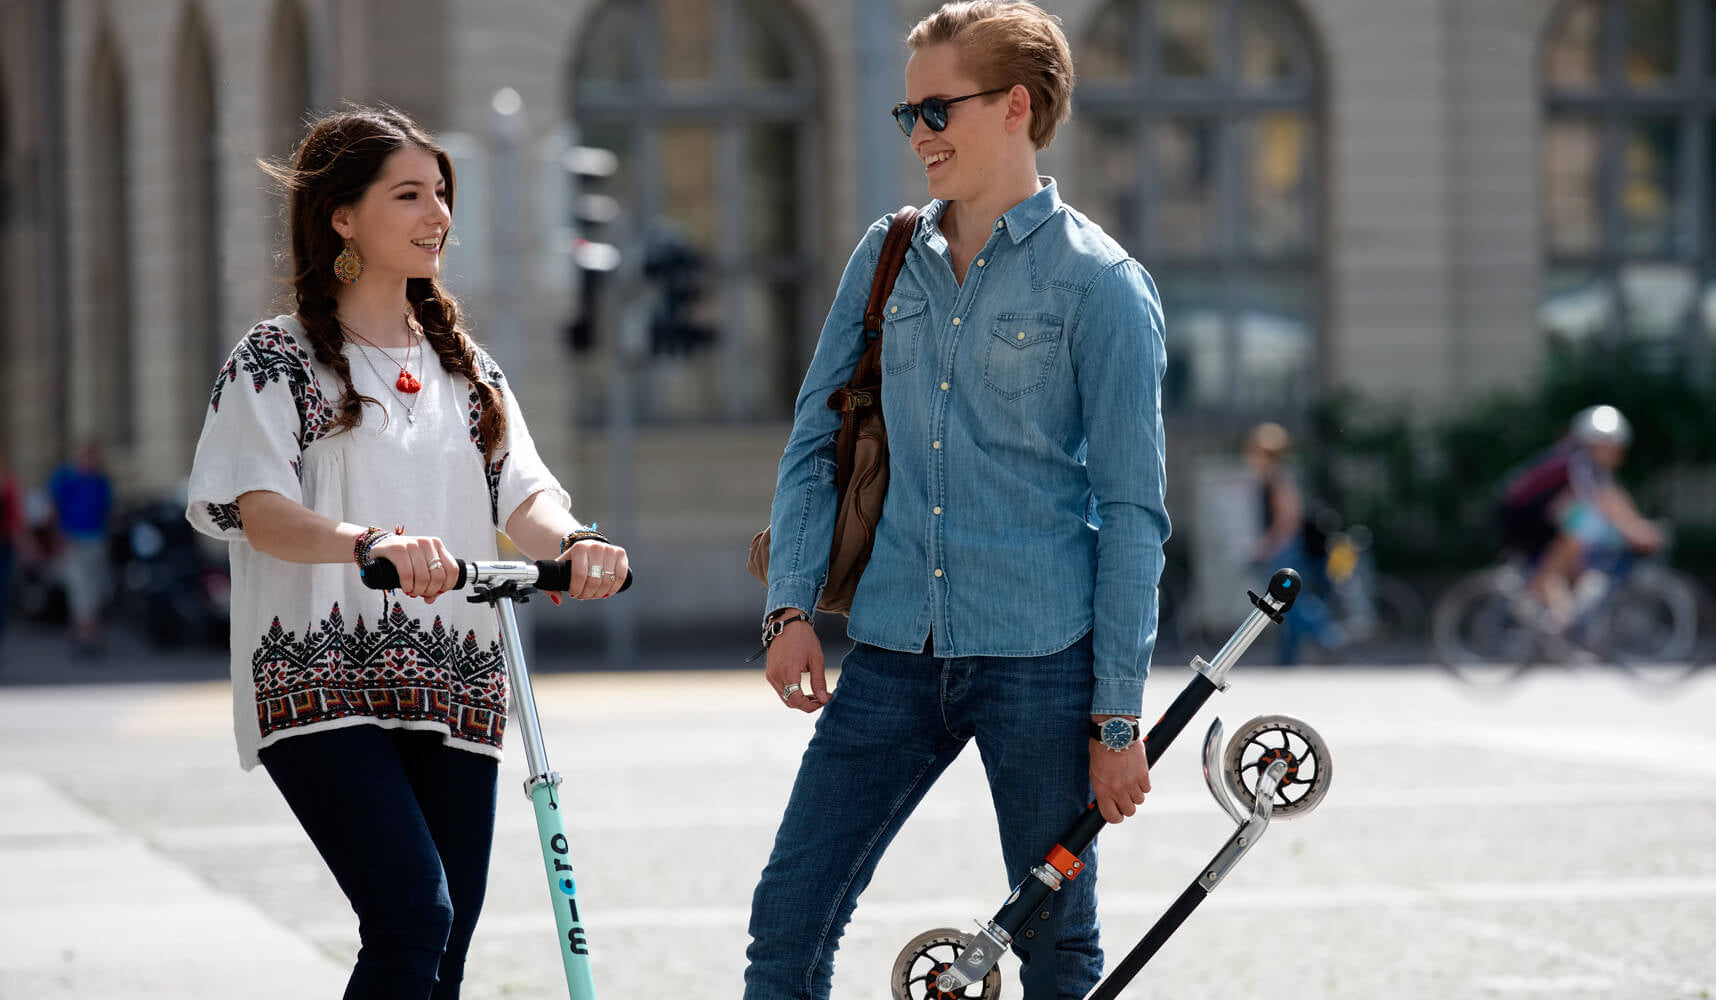 Couple with Micro Speed+ kick scooters